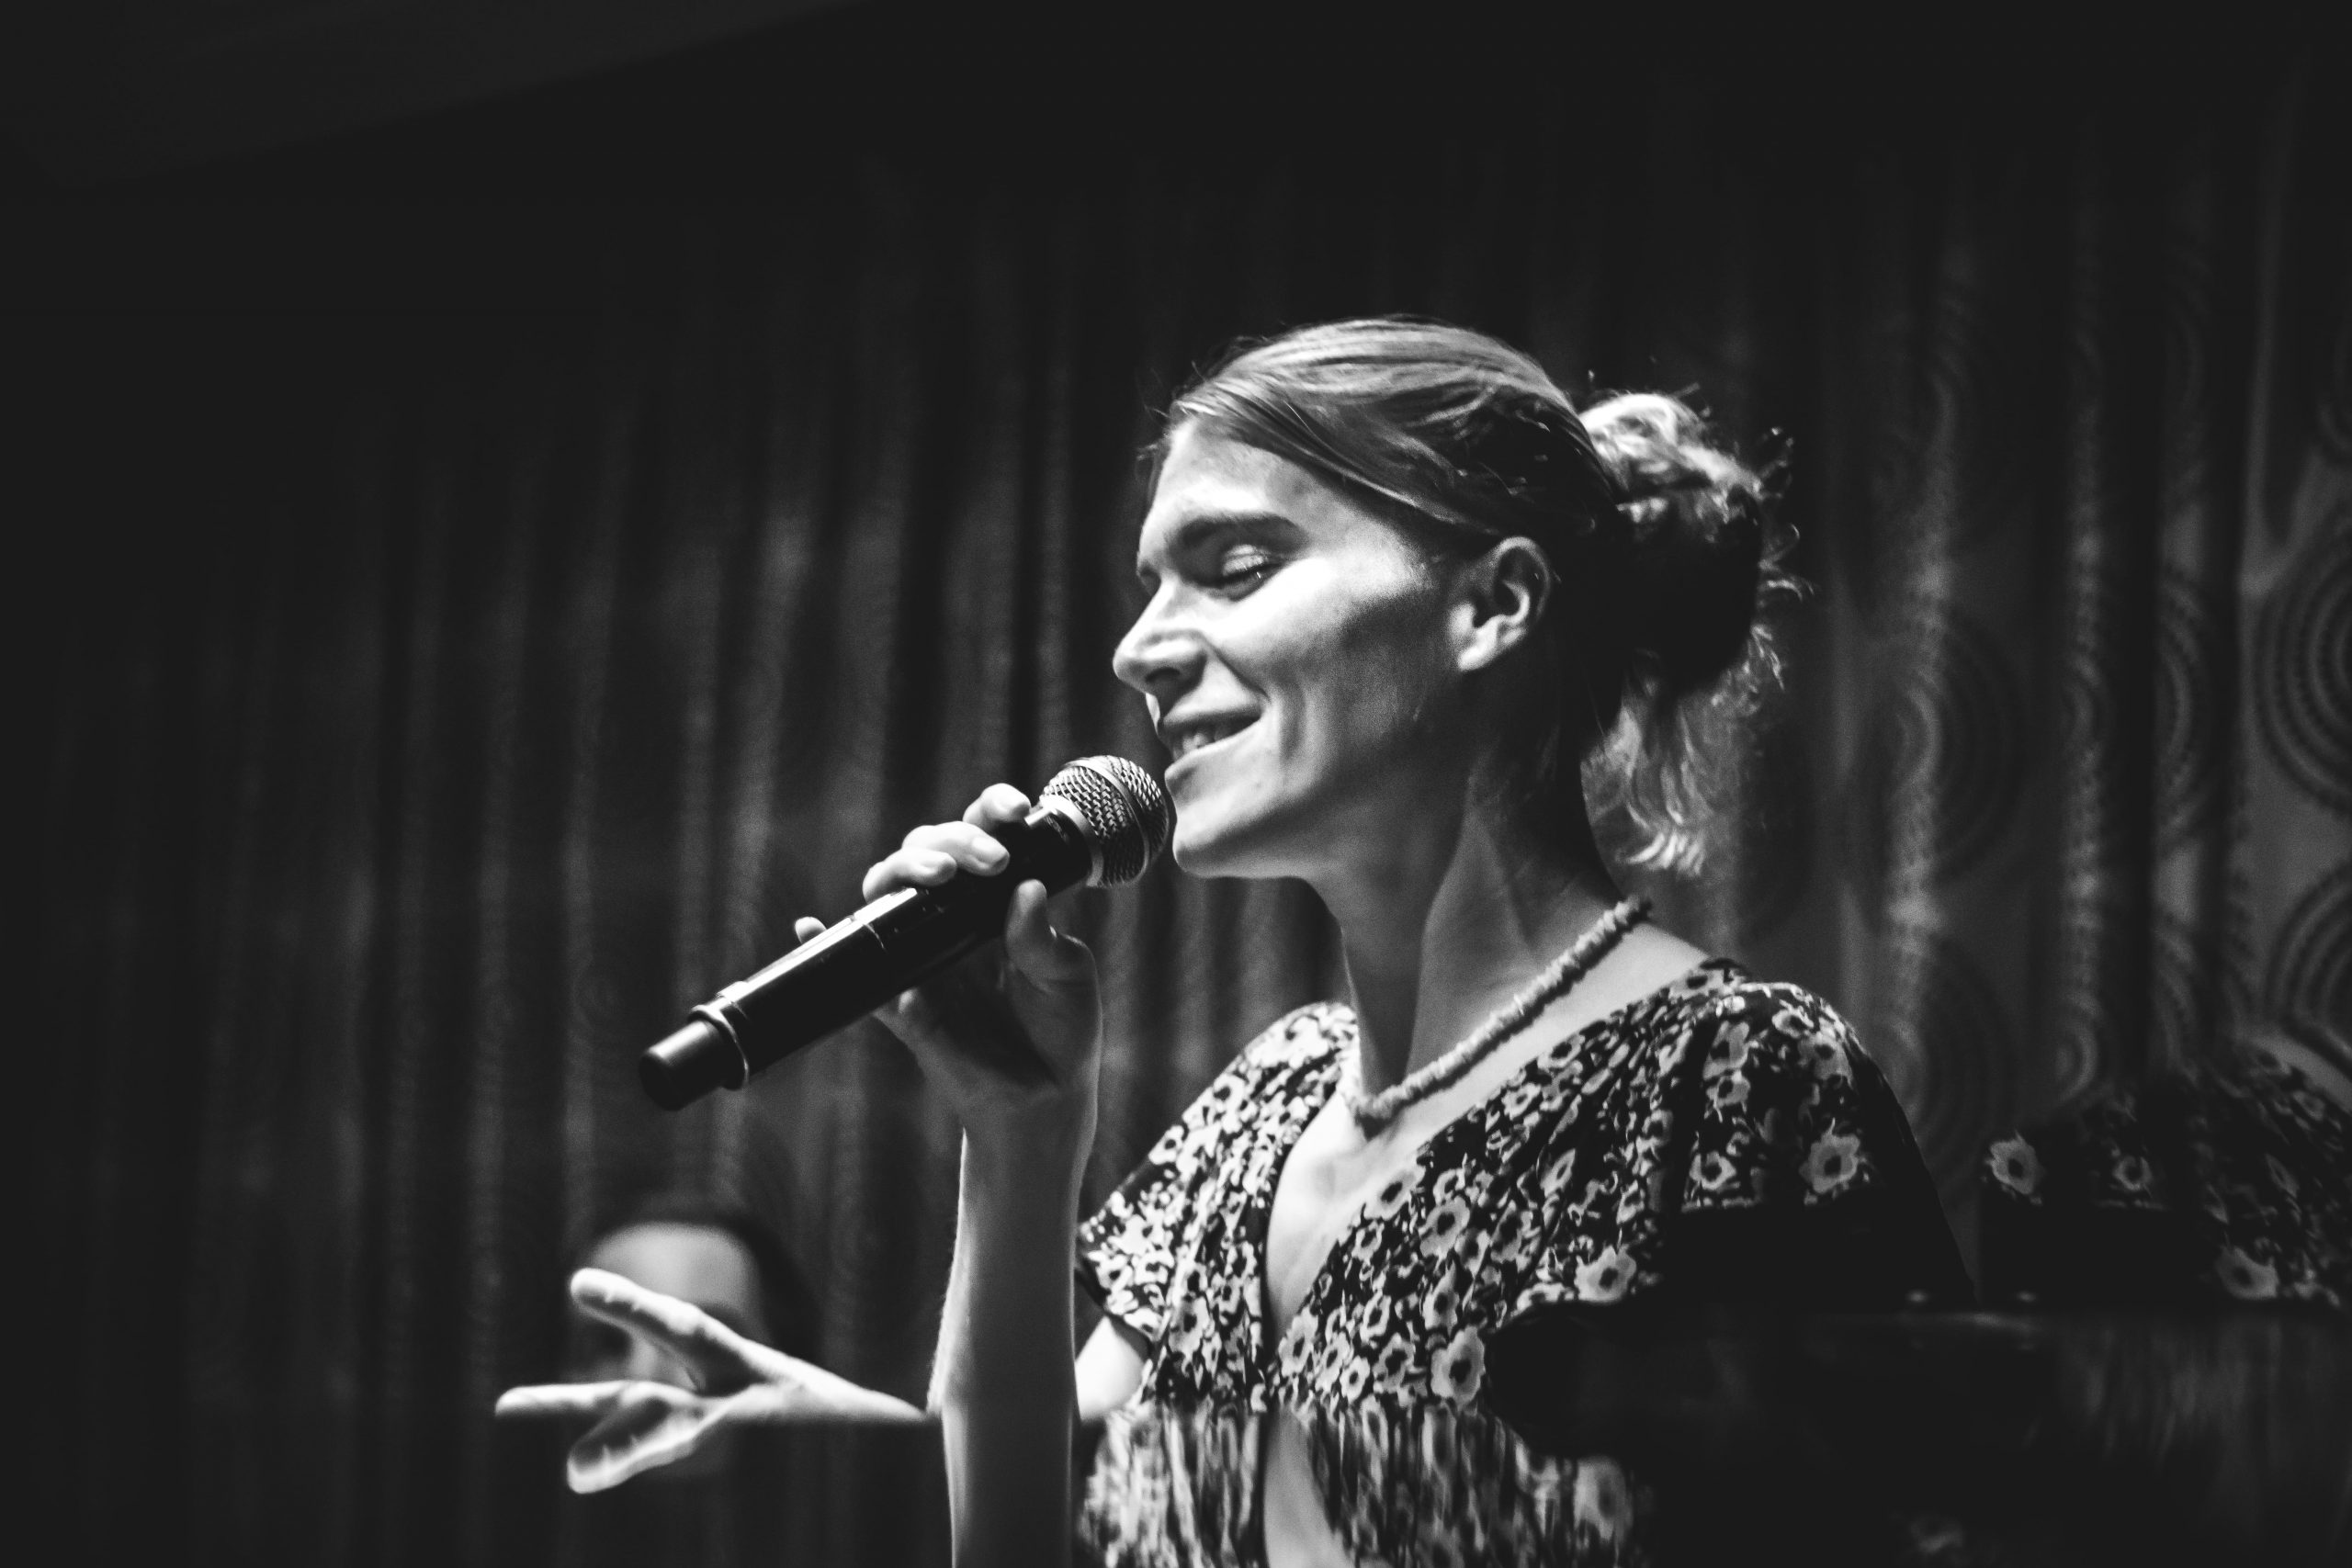 Jazz singer for hire